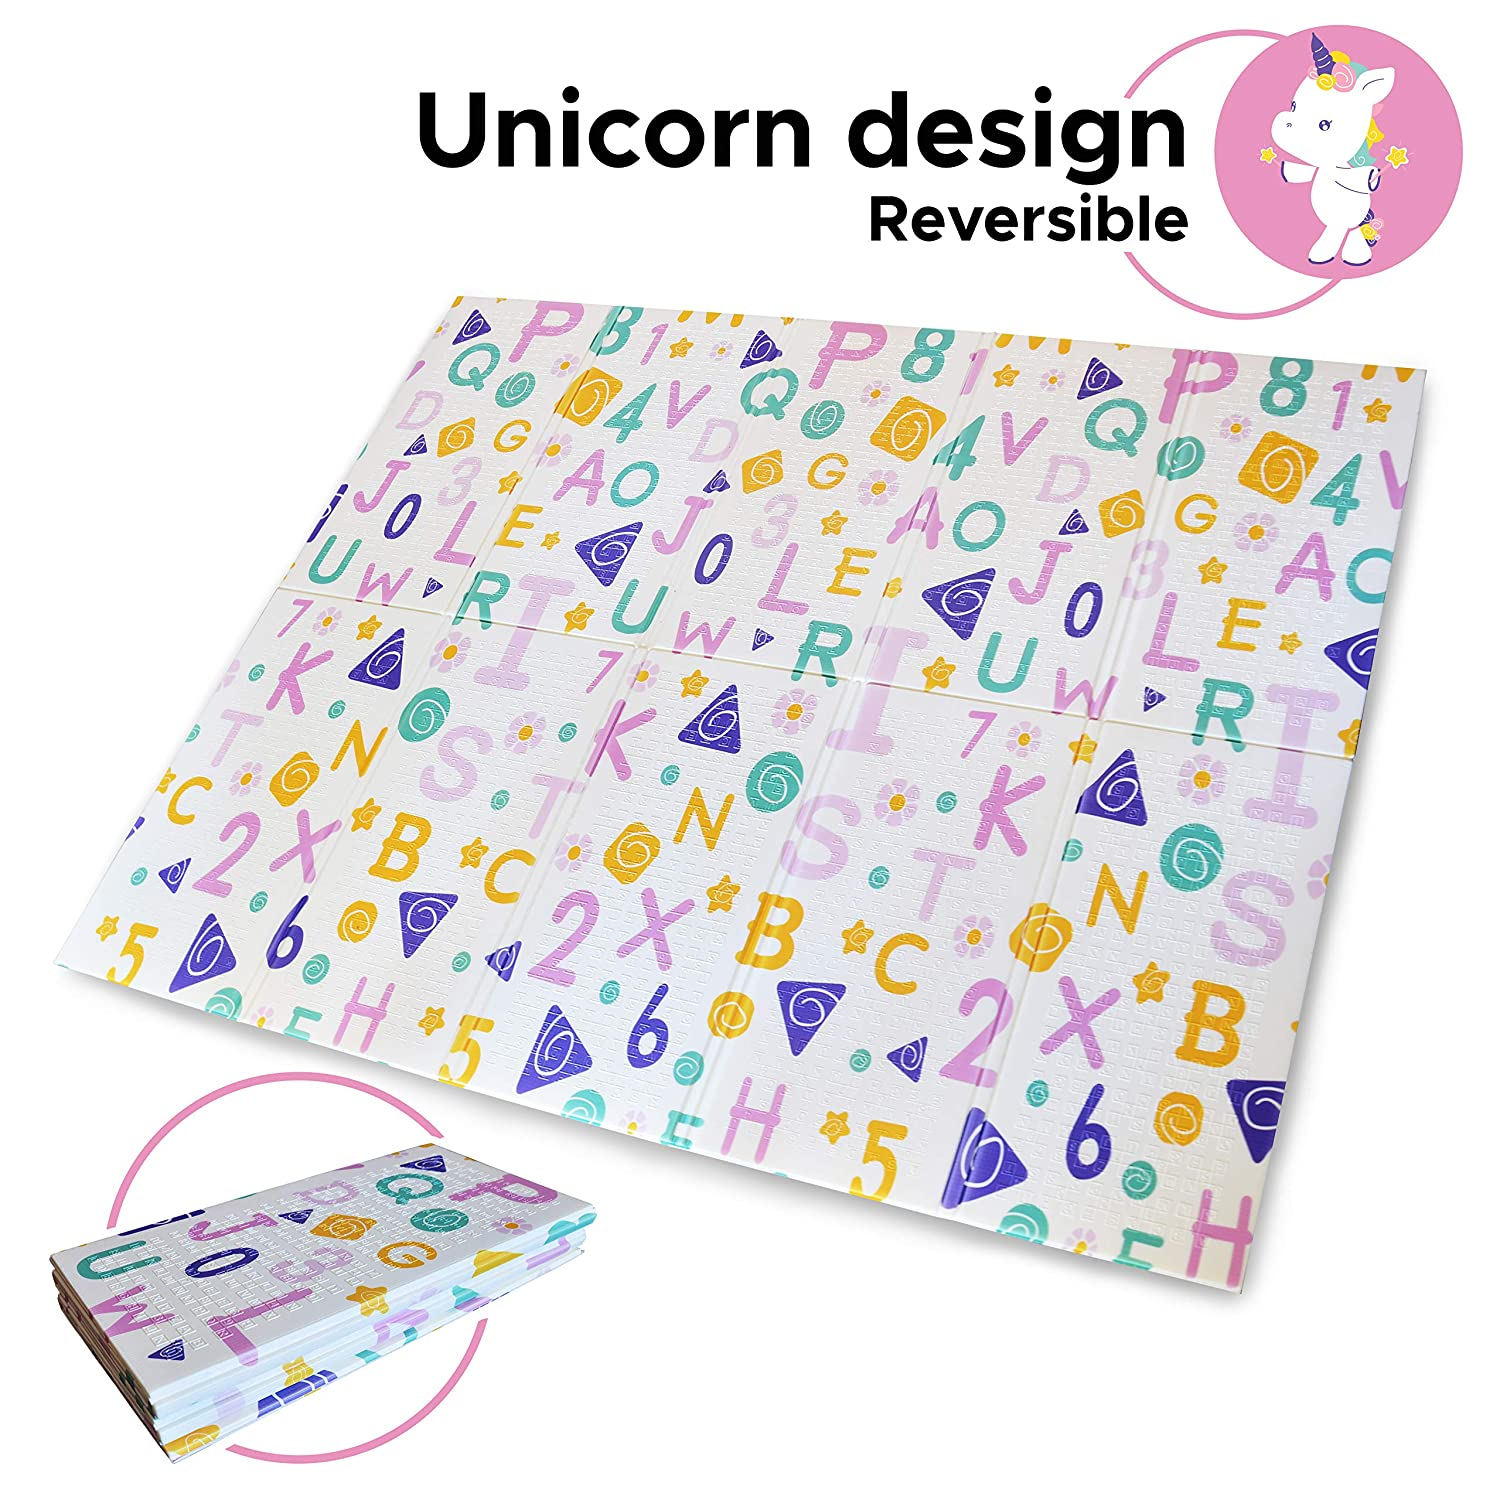 Baby Folding Play Mat Reversible Crawl Playmat. Toddler Unicorn and Educational Designs. XPE and BPA Free Waterproof Non Toxic Material. Pack n Play Outdoor or Indoor Use. 78x61x0.4 in Throwback Traits